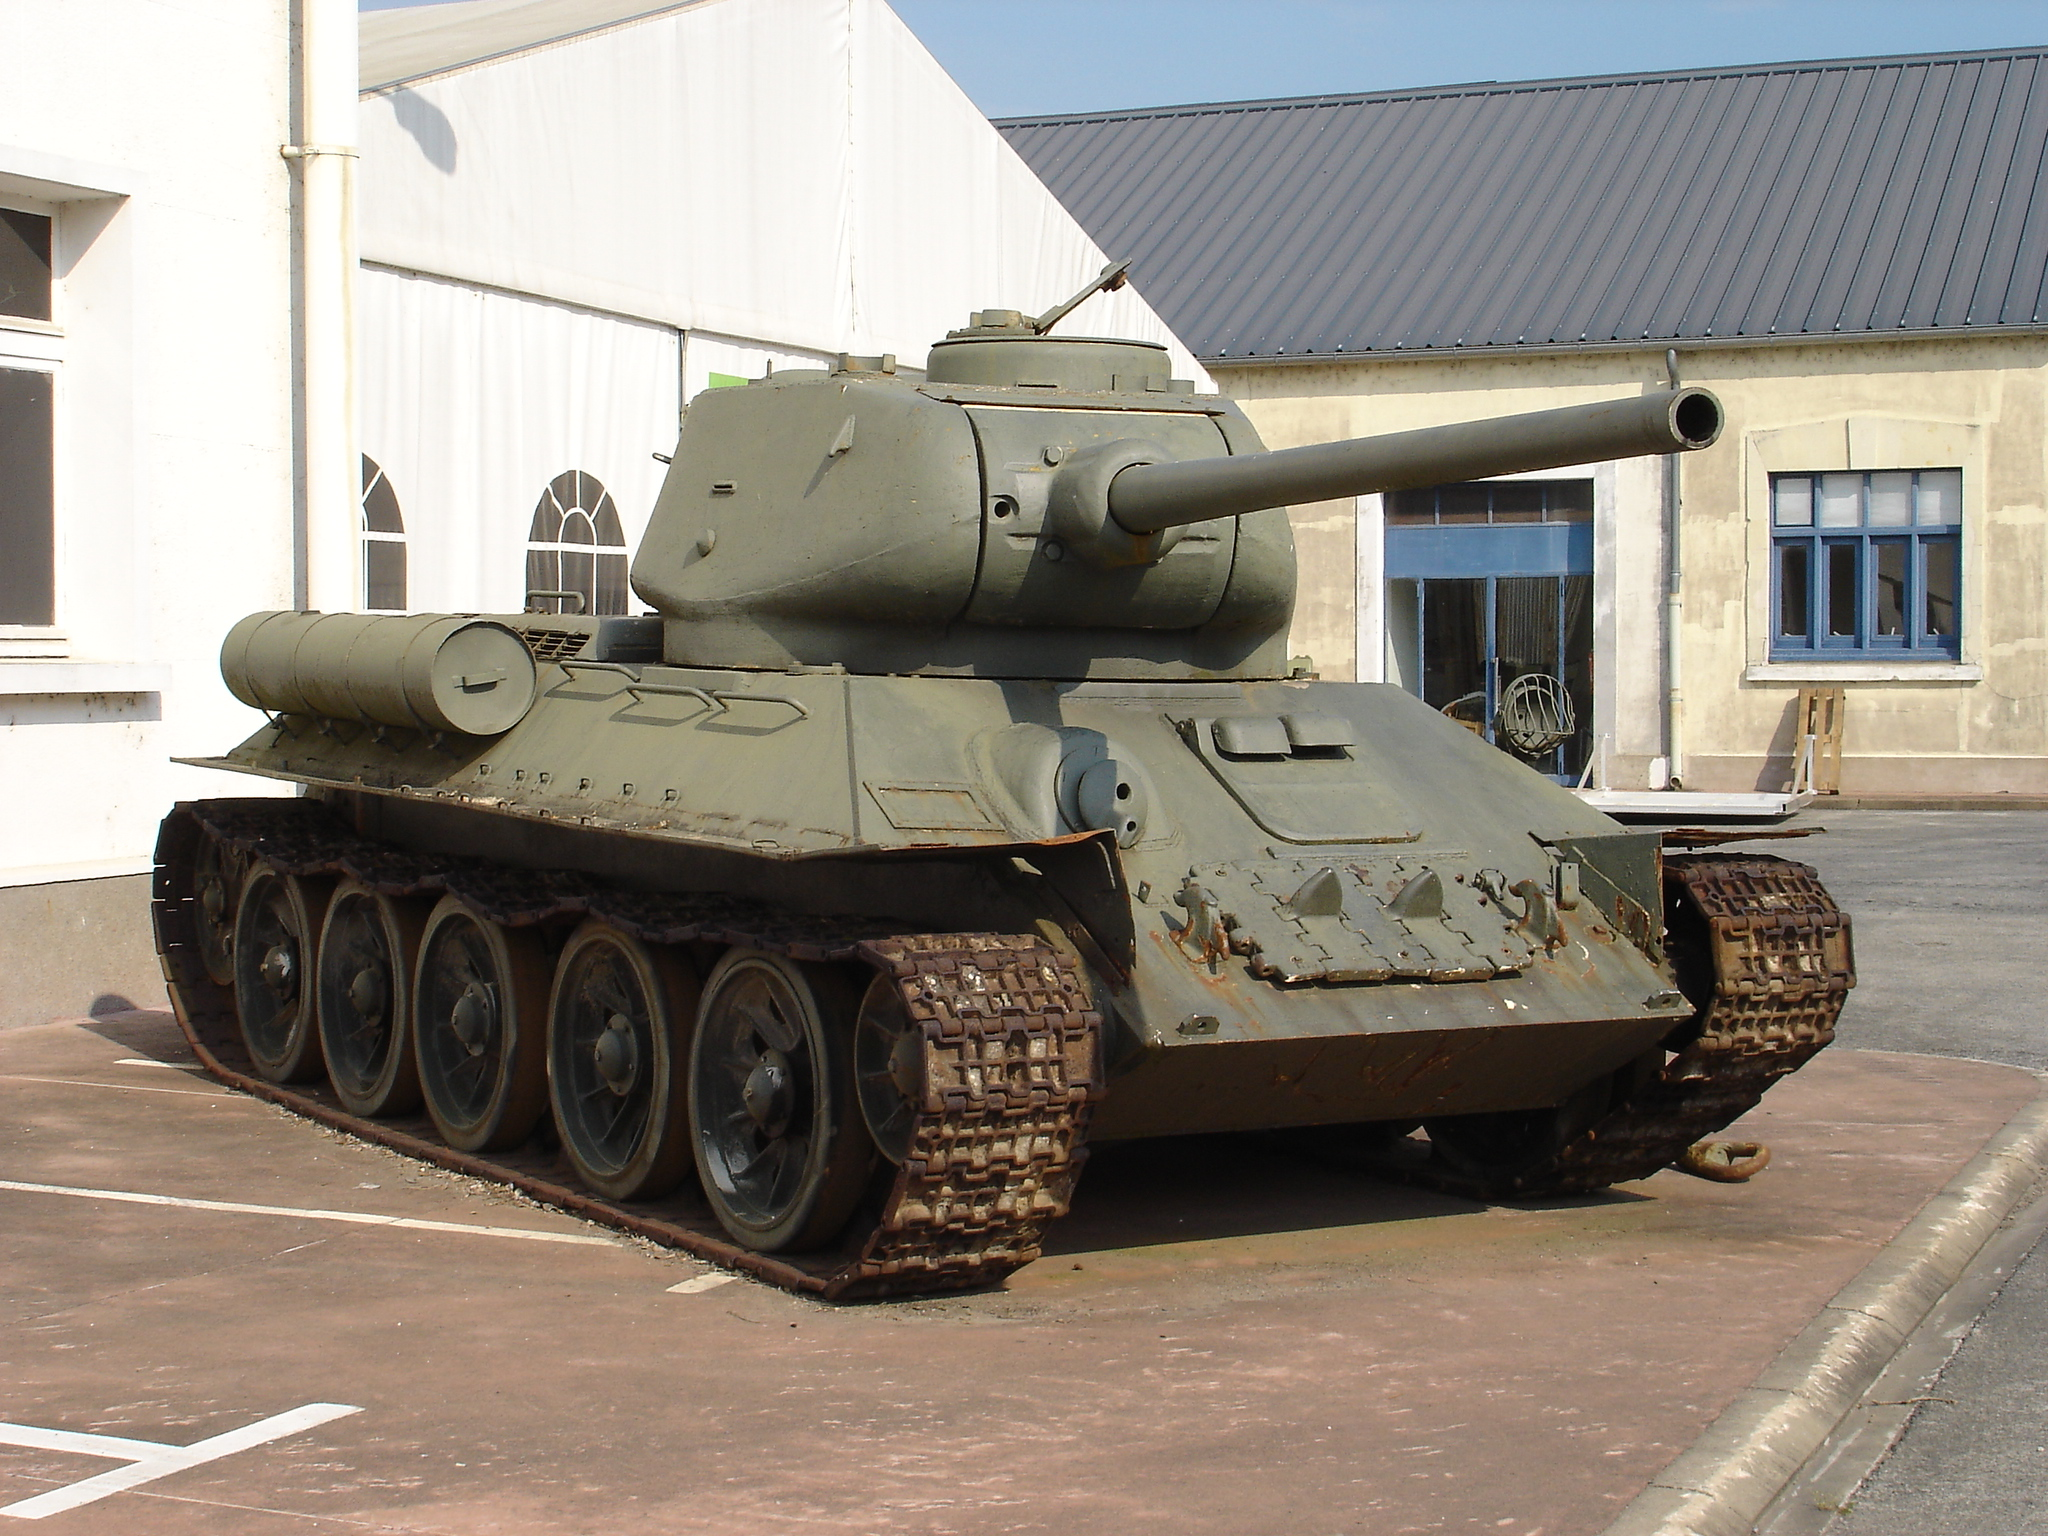 A rather beat up T-34-85